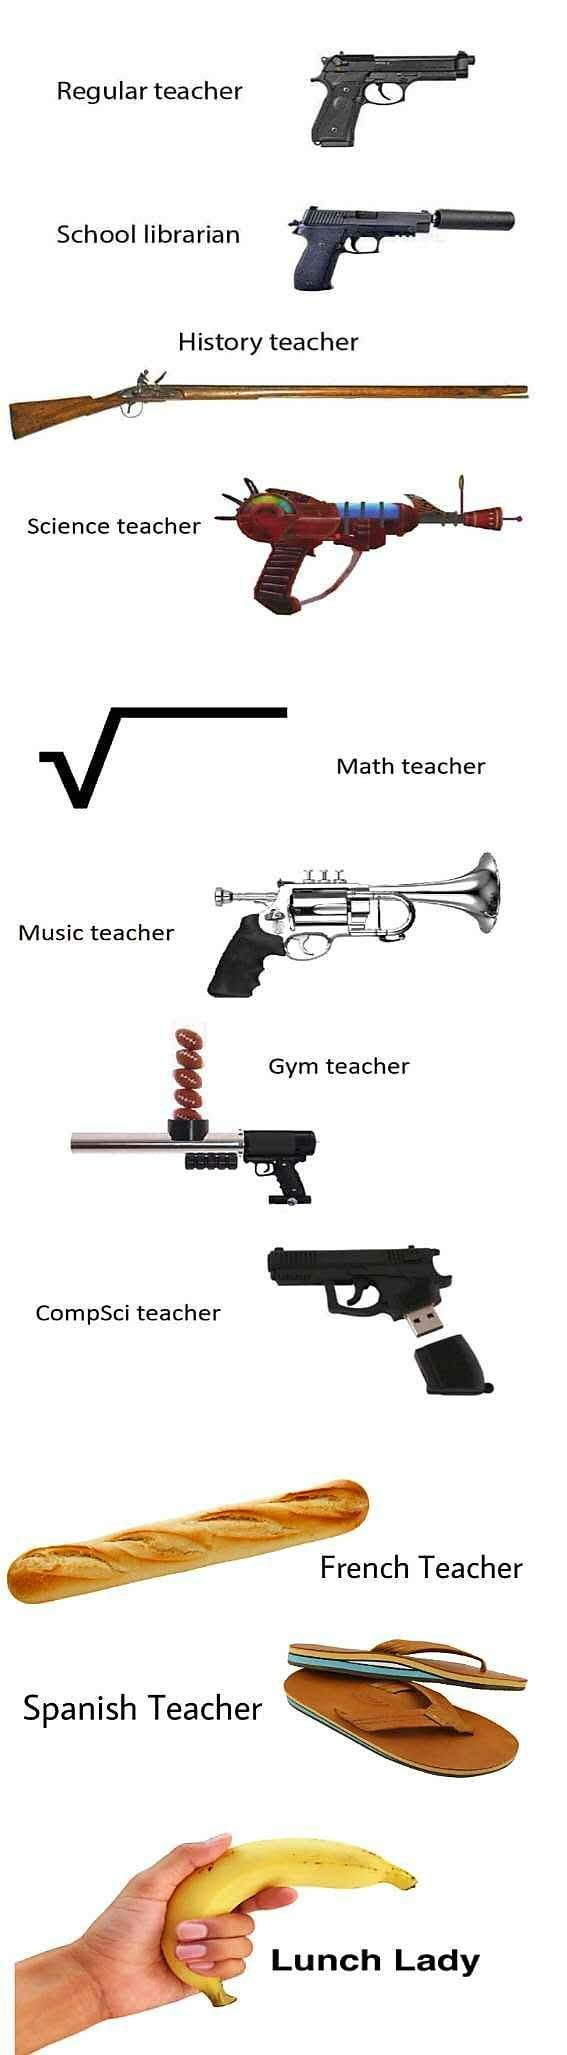 How teachers in the US are going to be